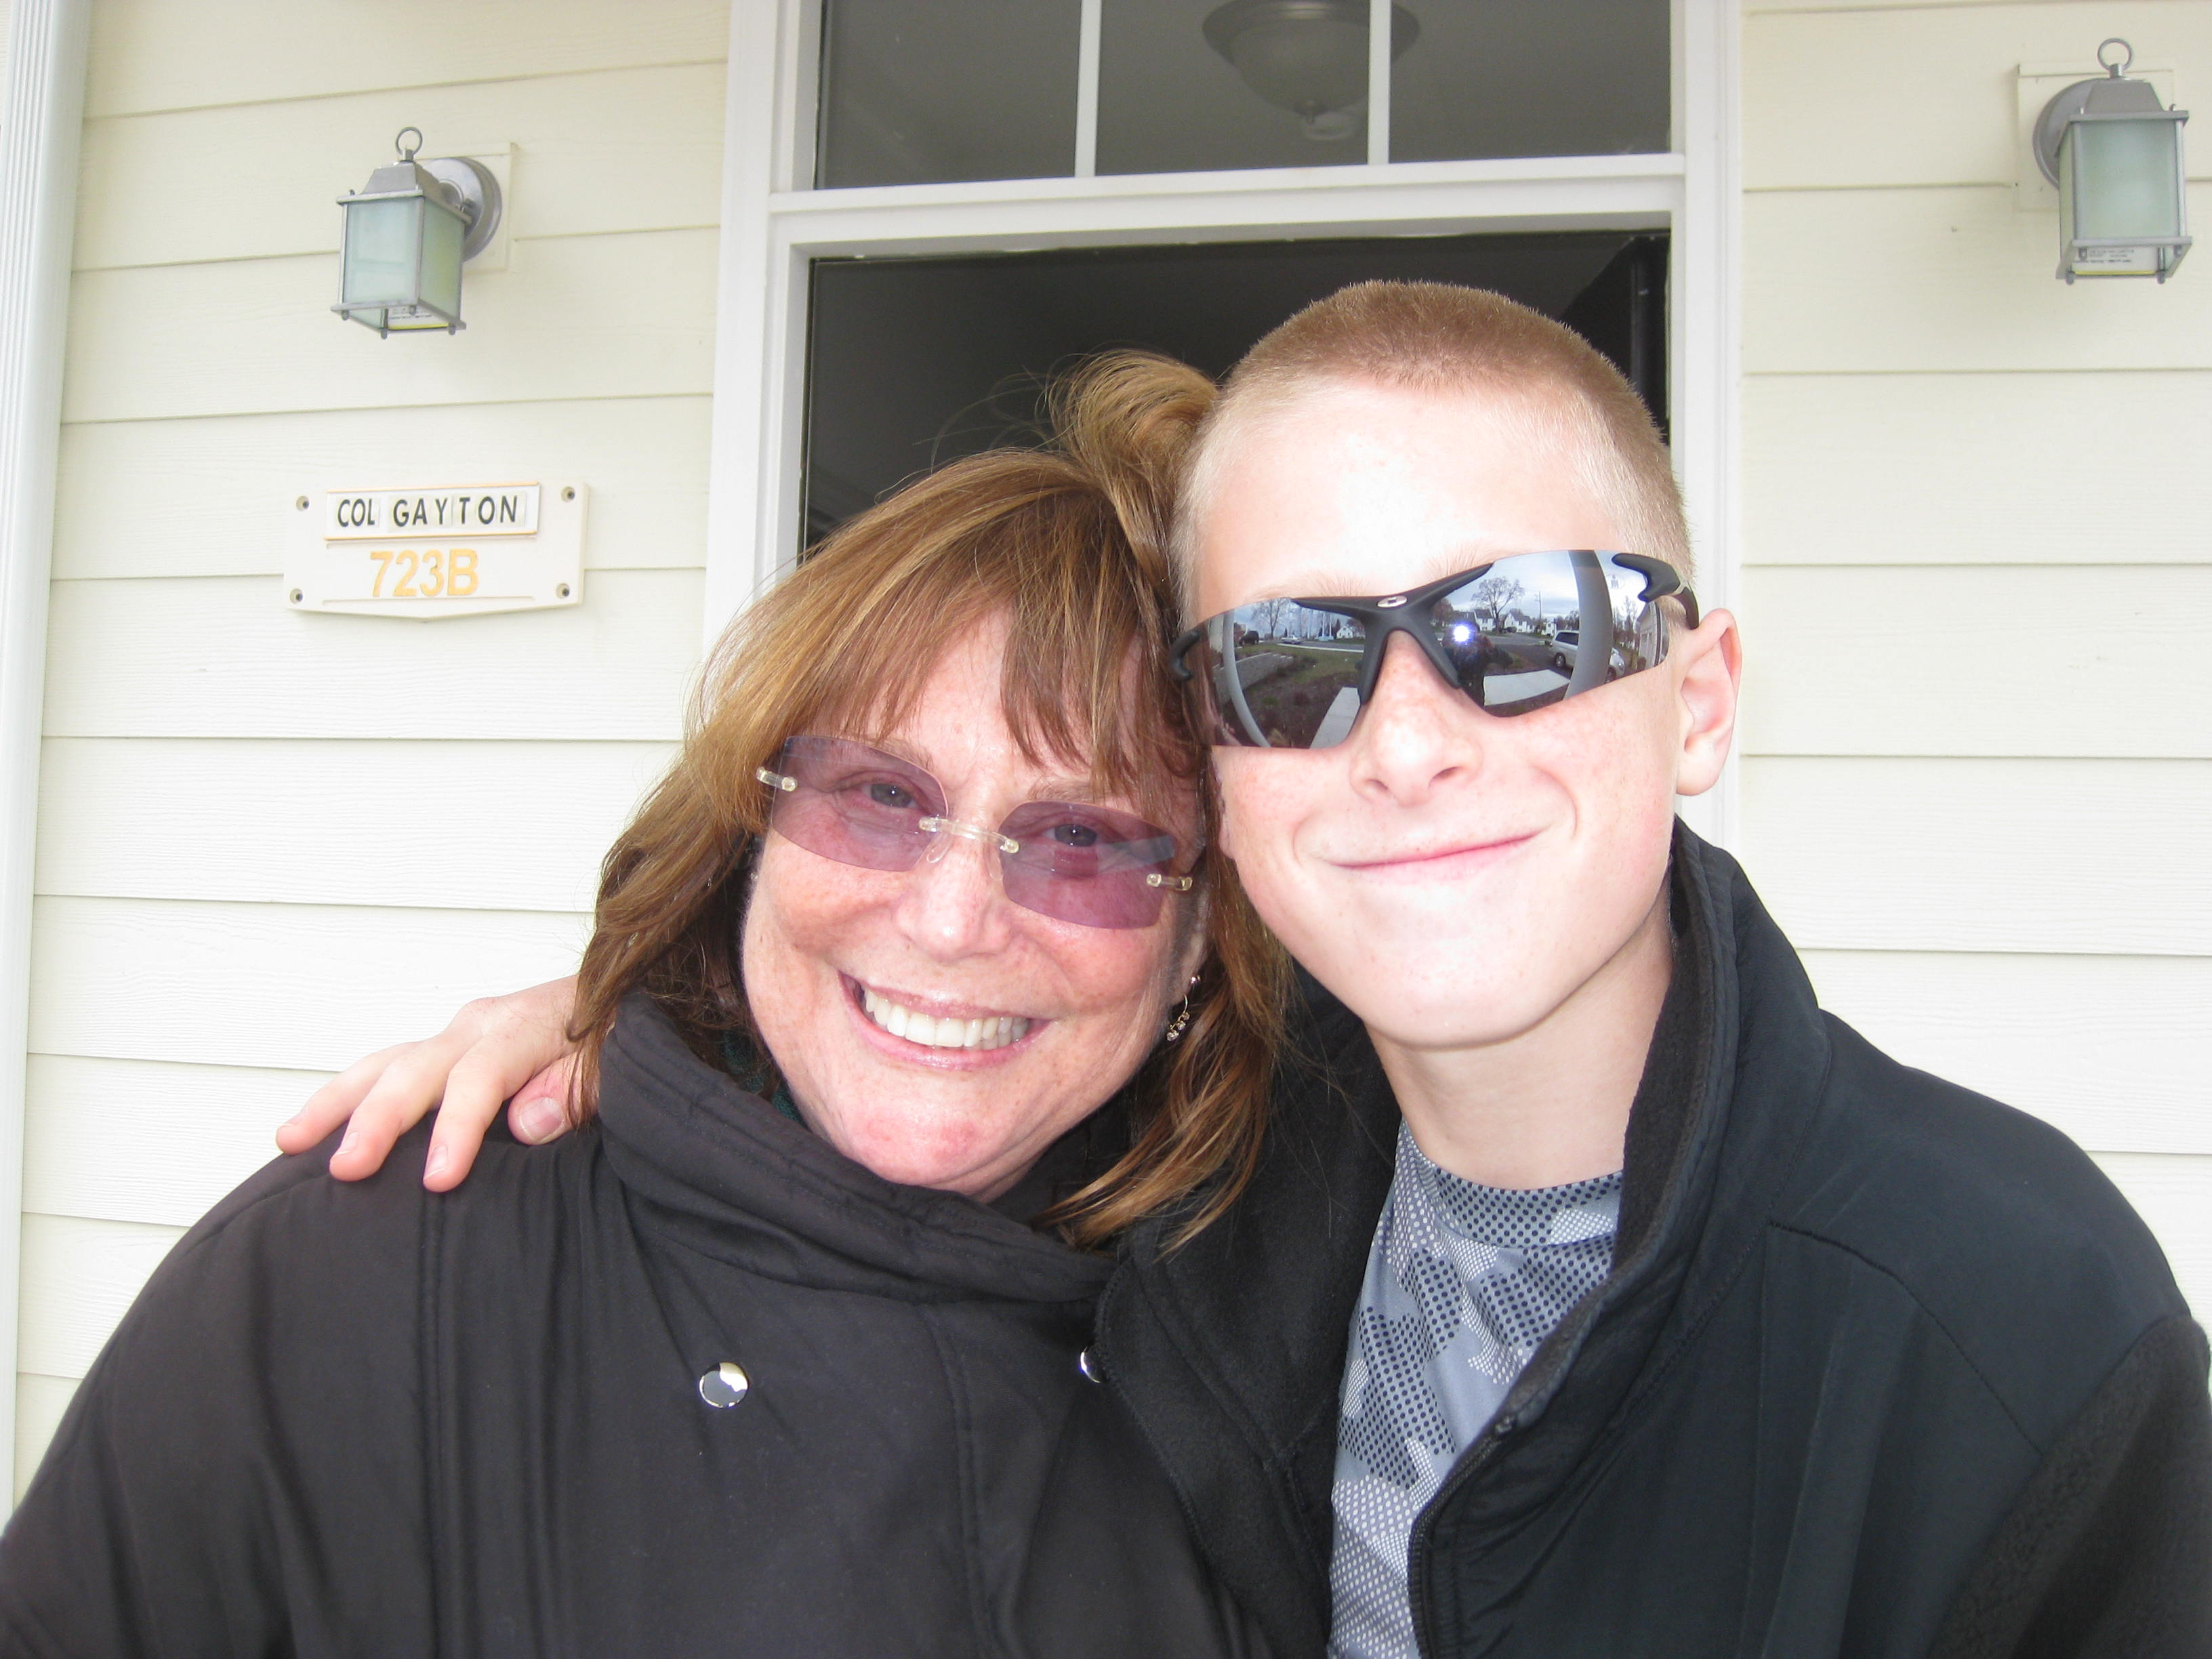 Judy Rogg (l) and her son Erik on March 31, 2010